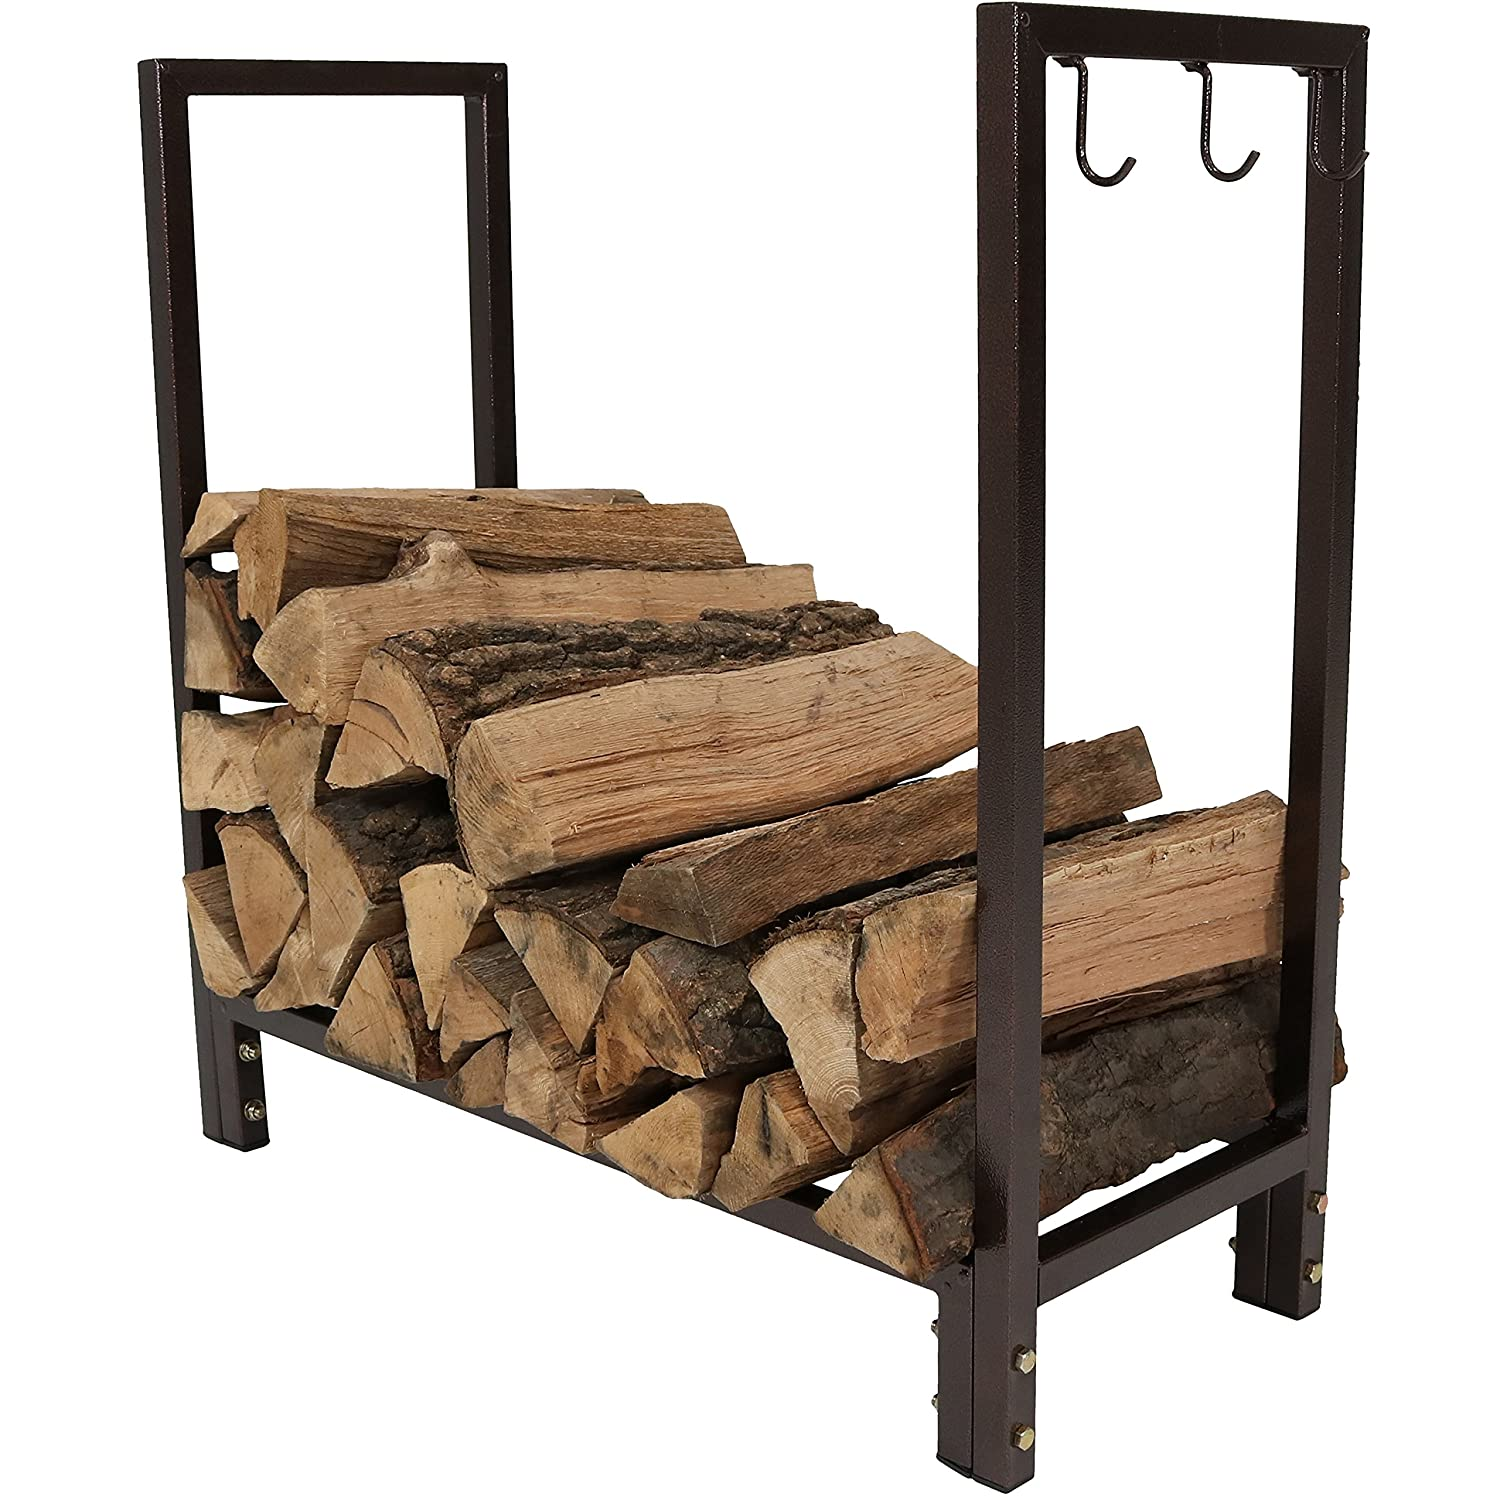 Sunnydaze Firewood Log Rack, Indoor Outdoor Wood Storage Holder for Fireplace, Bronze, 30 Inch